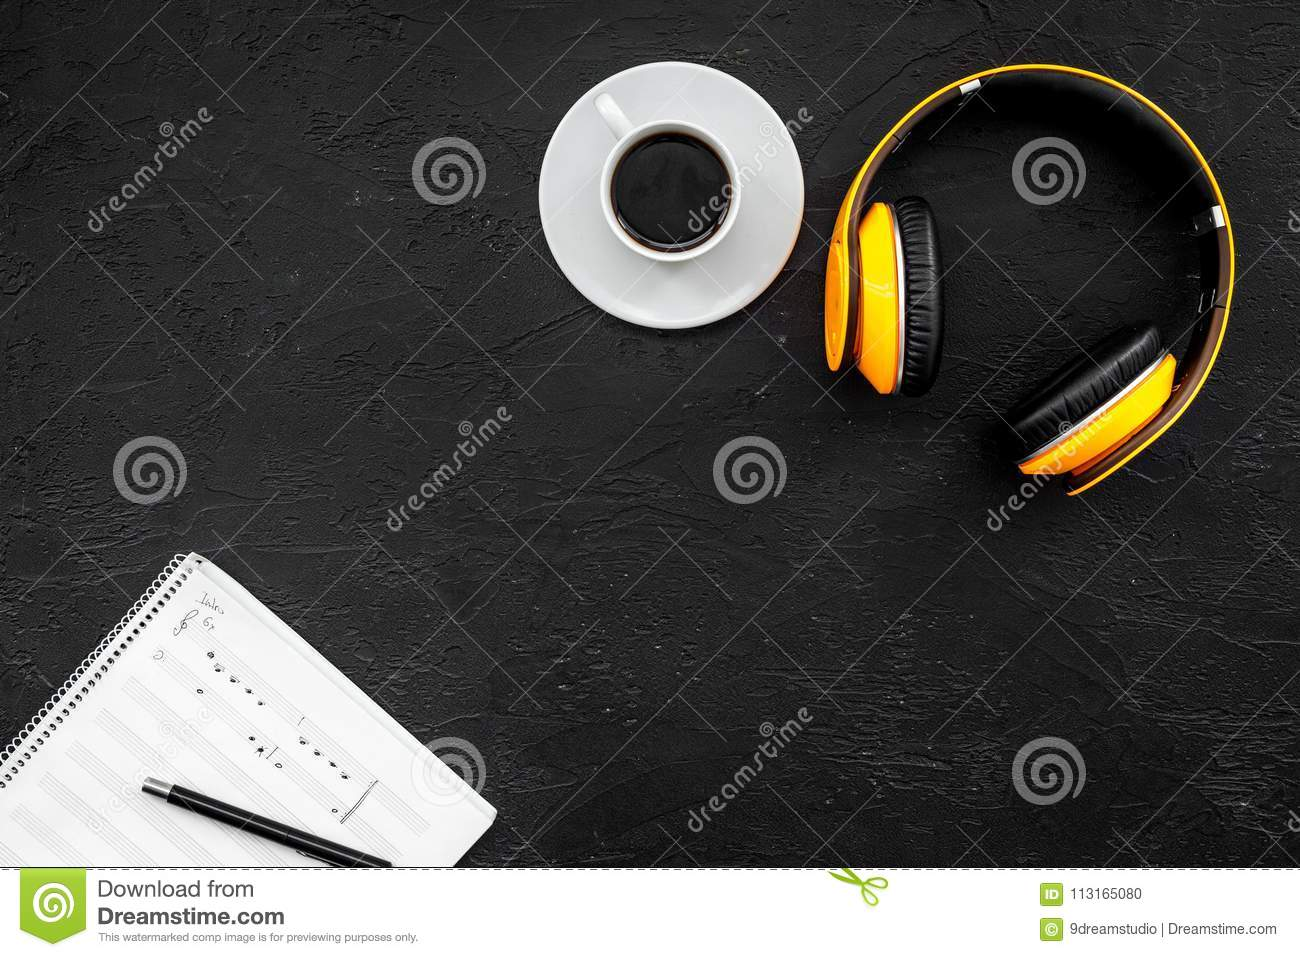 Composer And Song Writer Desktop With Headphones And Notes On Black